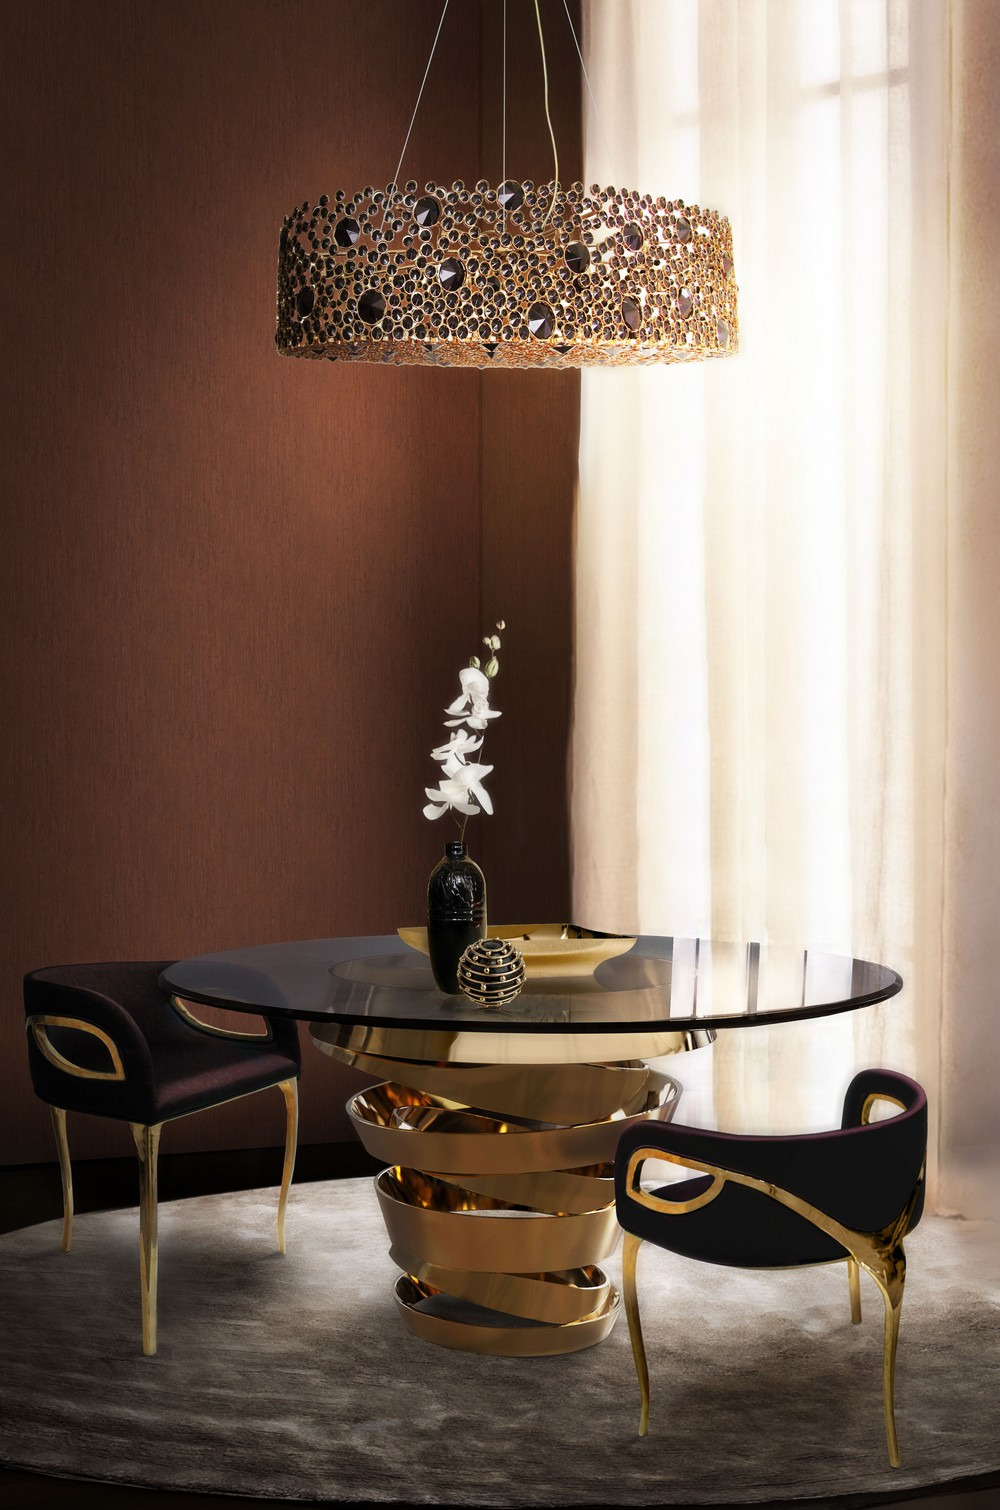 10 Amazing Dining Room Decoration Ideas That Will Delight You3 dining room decoration ideas 10 Amazing Dining Room Decoration Ideas That Will Delight You 10 Amazing Dining Room Decoration Ideas That Will Delight You3